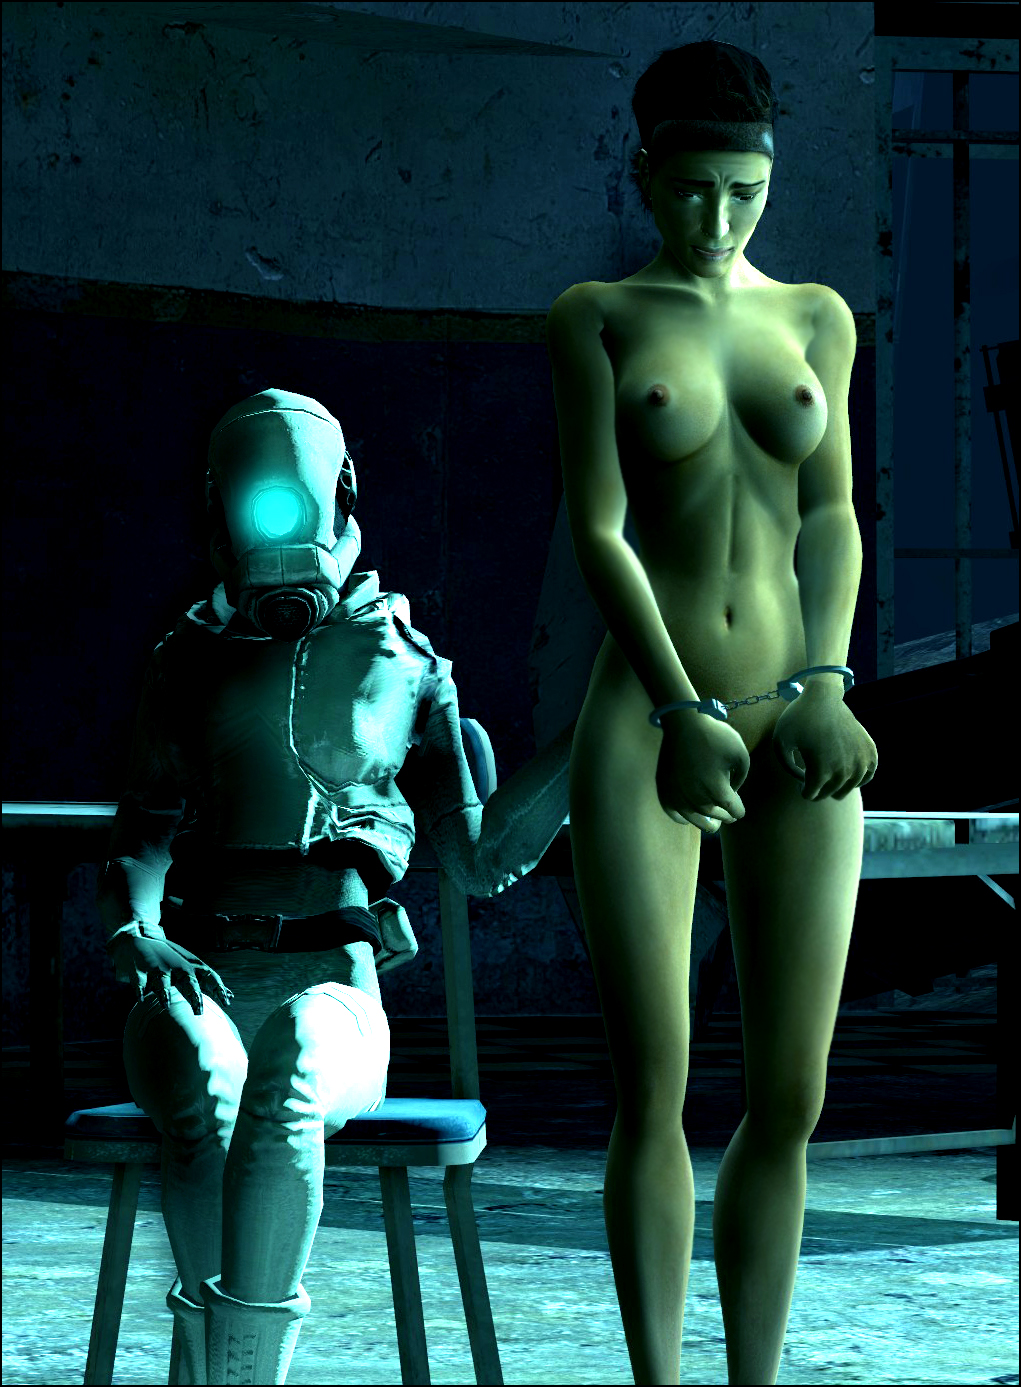 friendly half-life mr If it exist there is porn